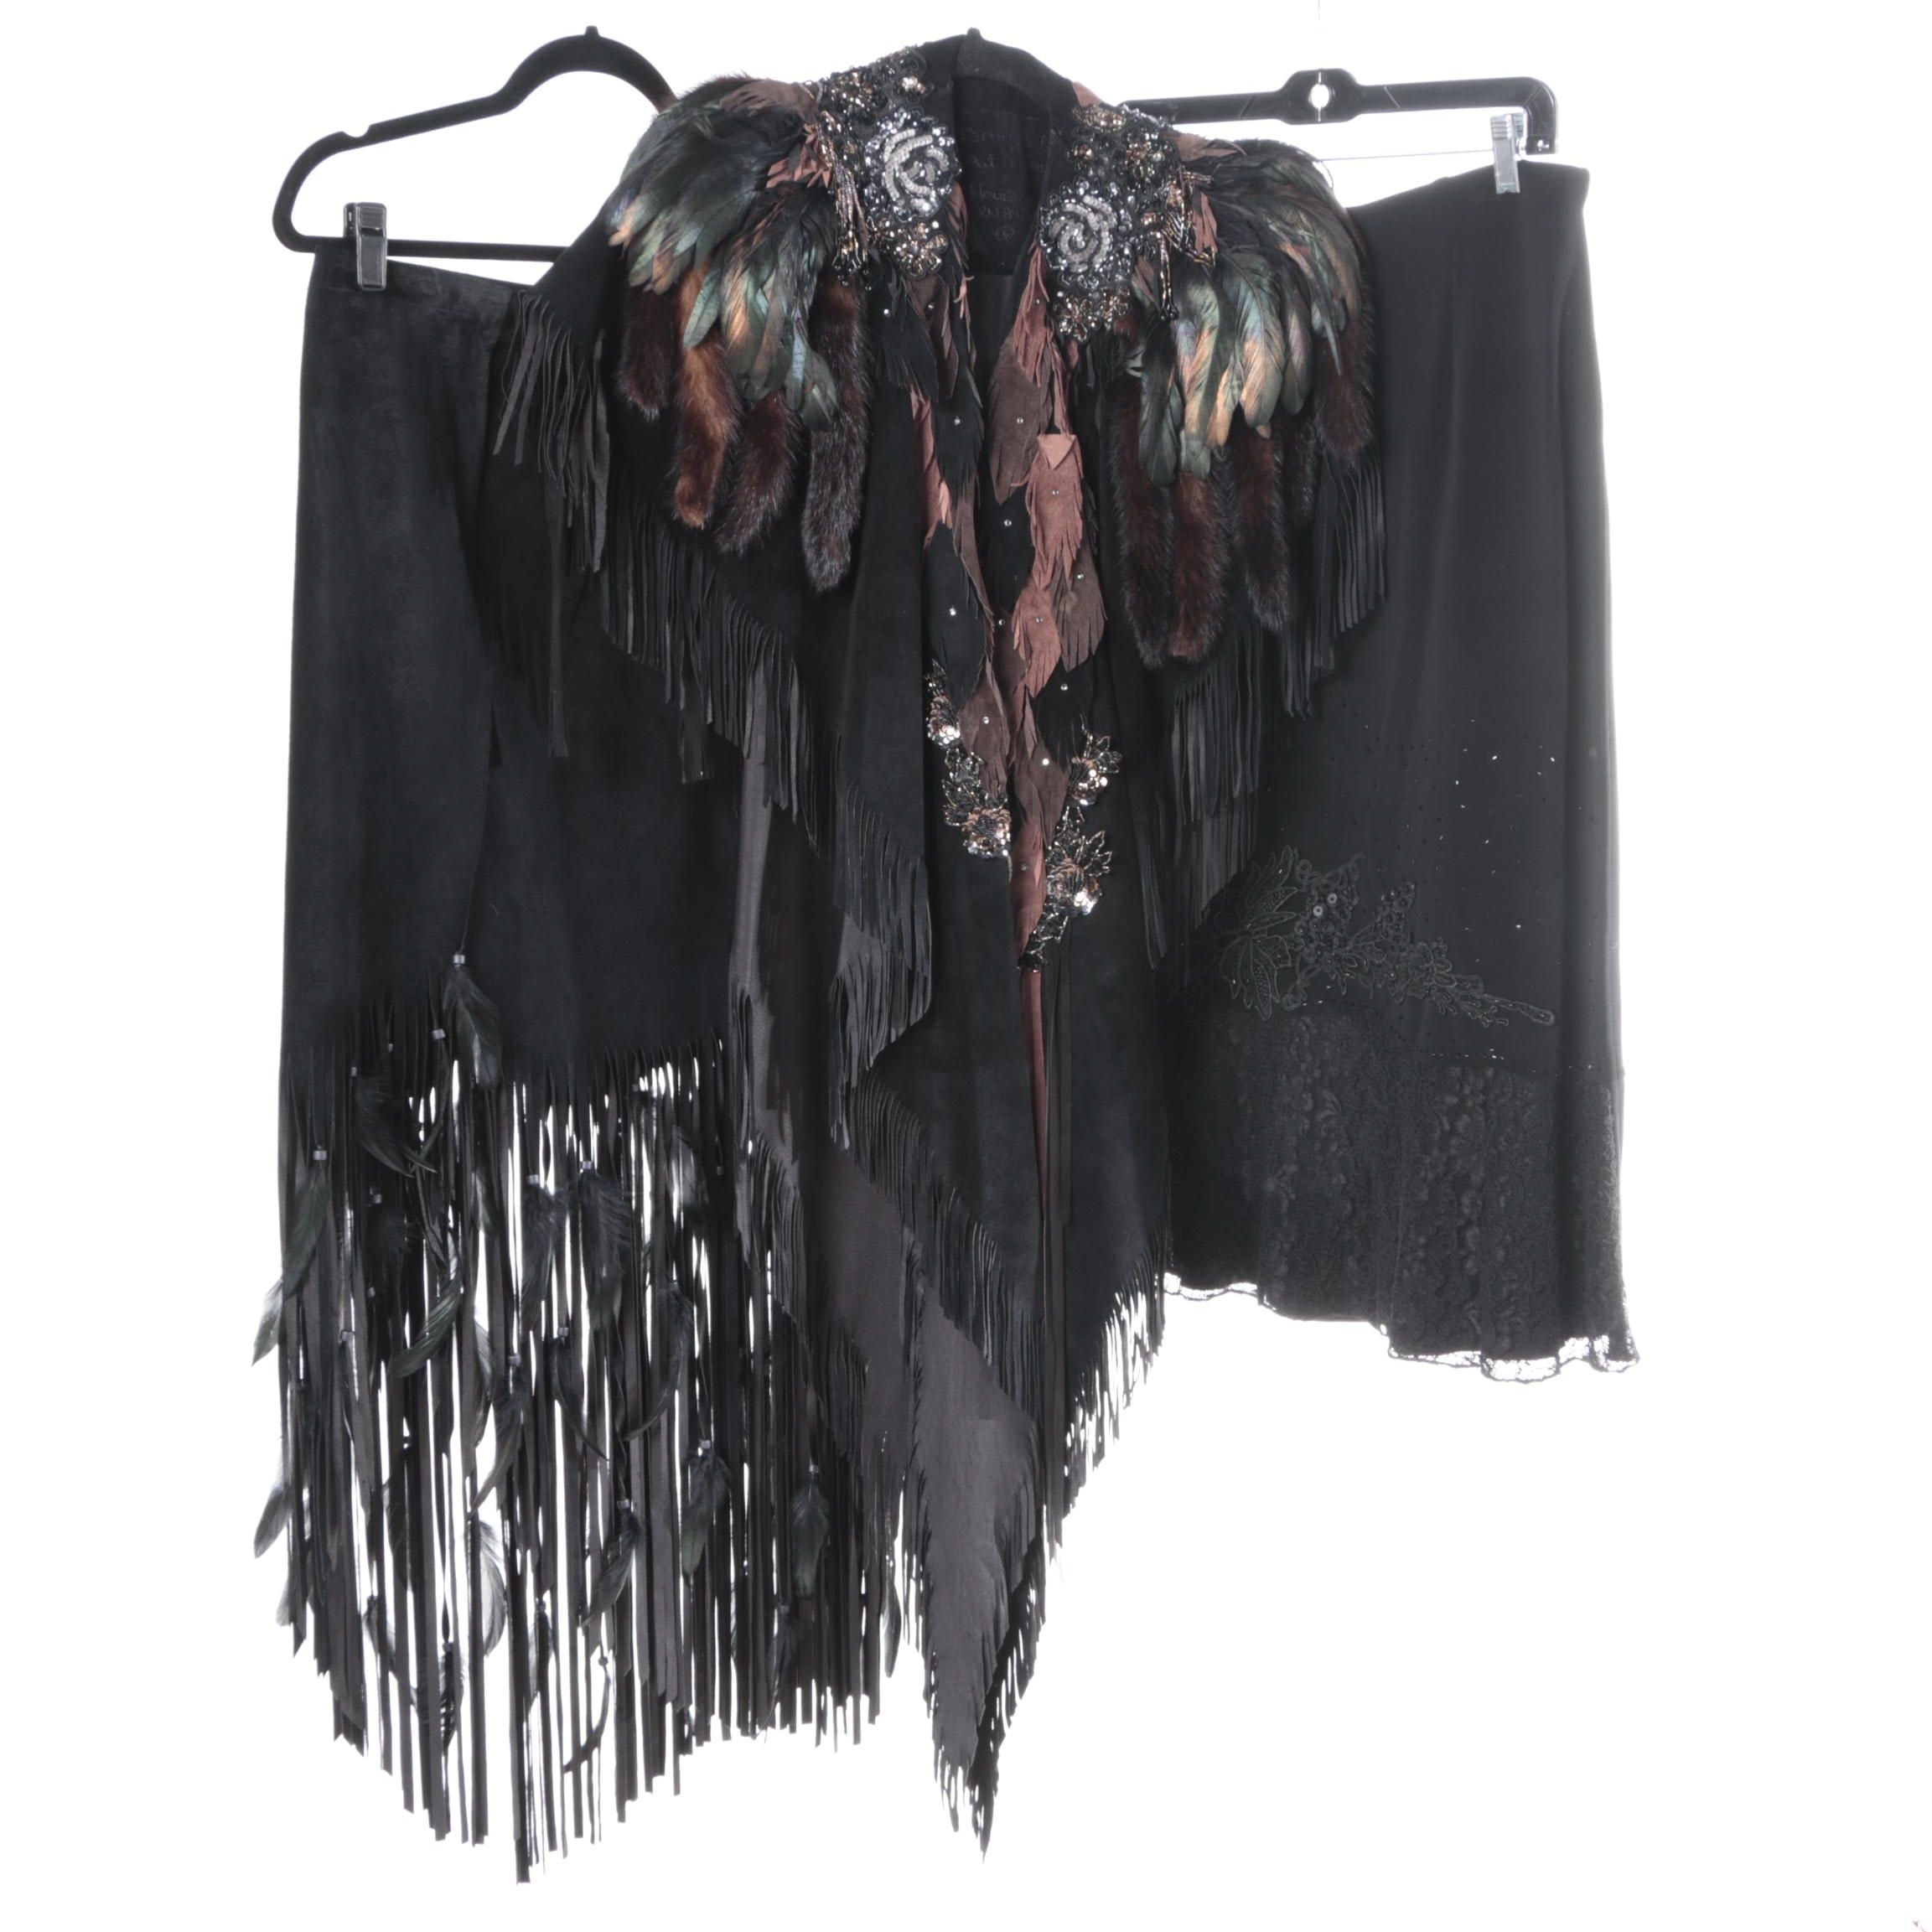 Women's Western Style Clothing Including Pat Dahnke